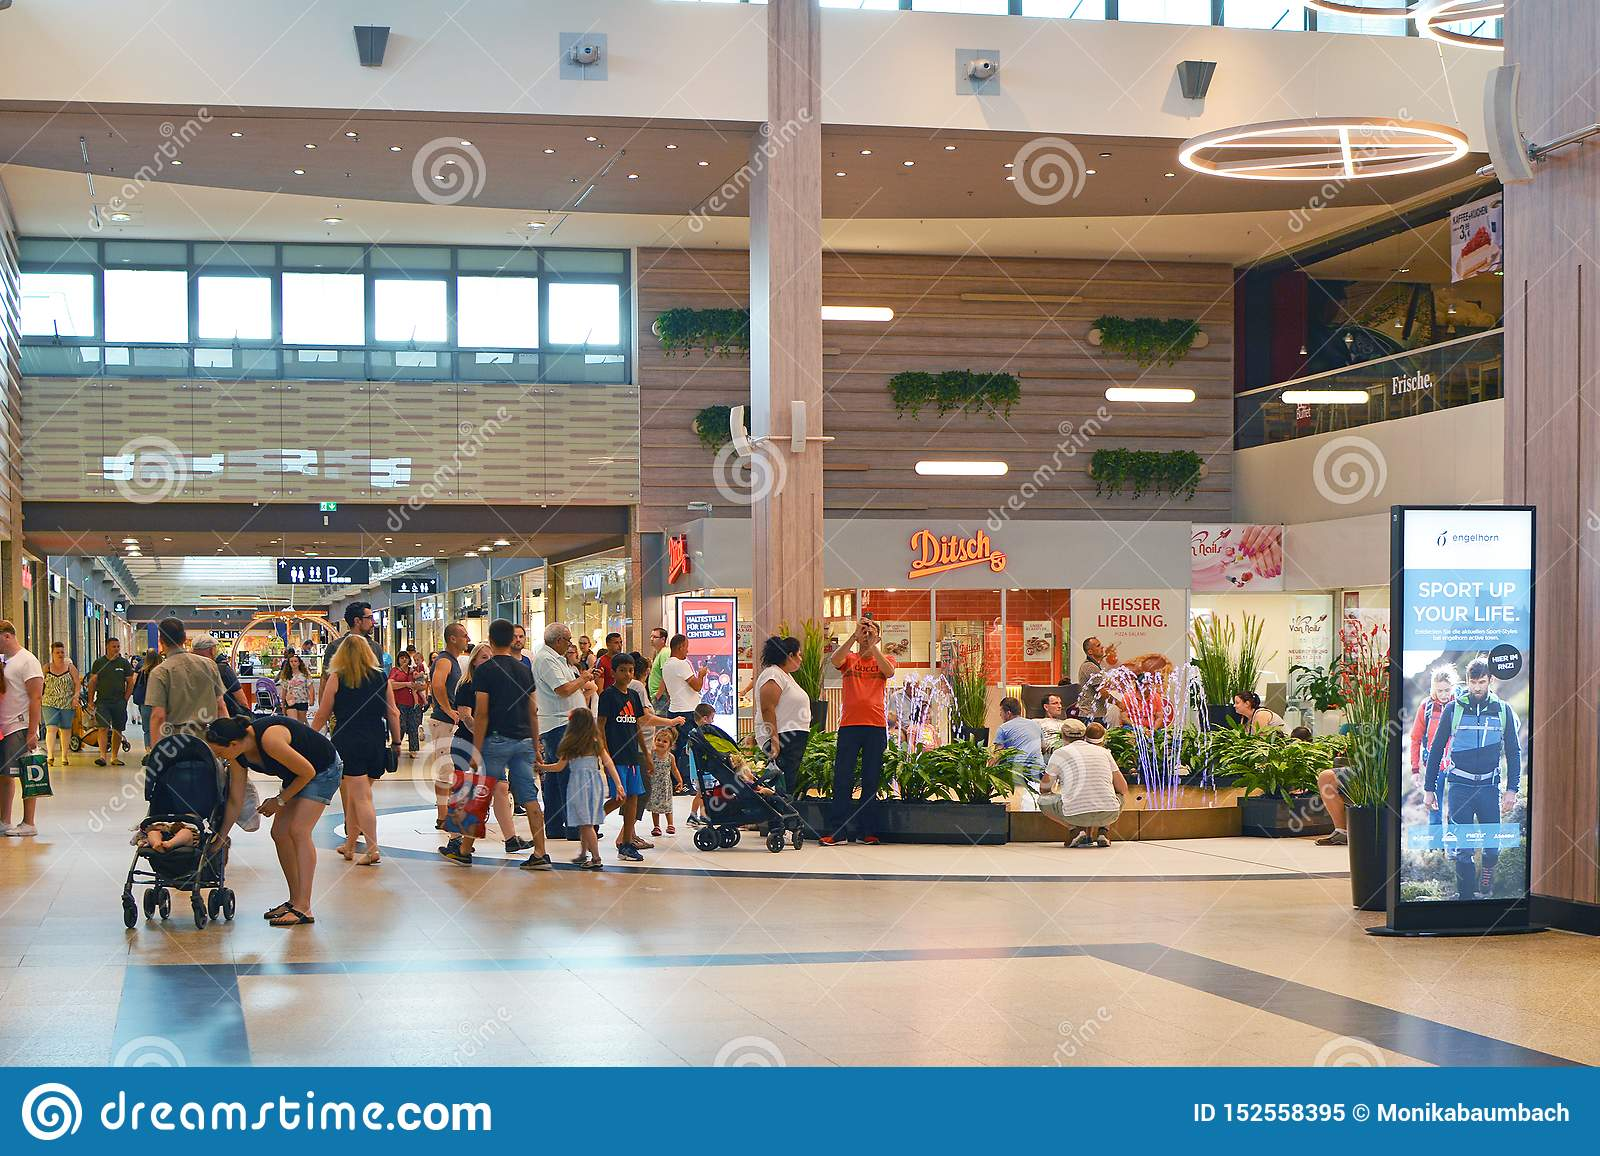 Inside of shopping mall called `Rhein Neckar Zentrum` with people shopping on a busy day